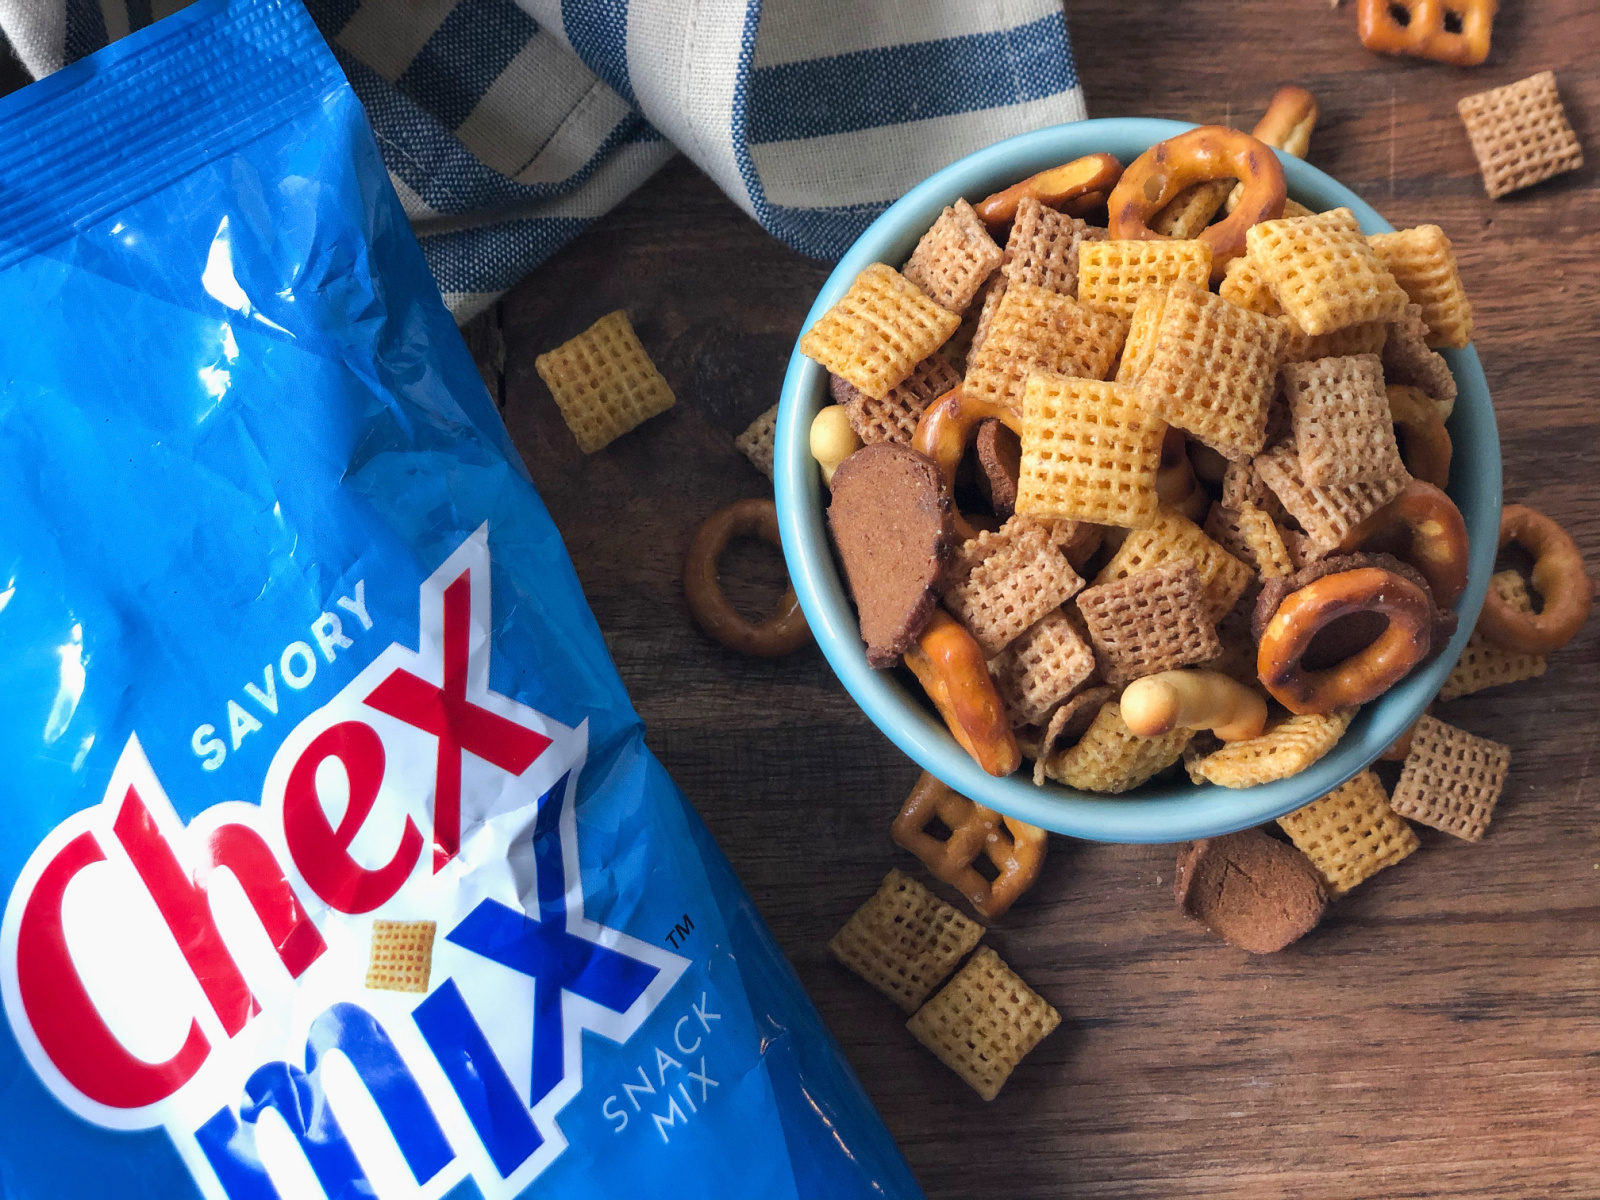 Chex Mix, Bugles Or Gardetto's Only $1.13 Per Bag At Publix on I Heart Publix 1